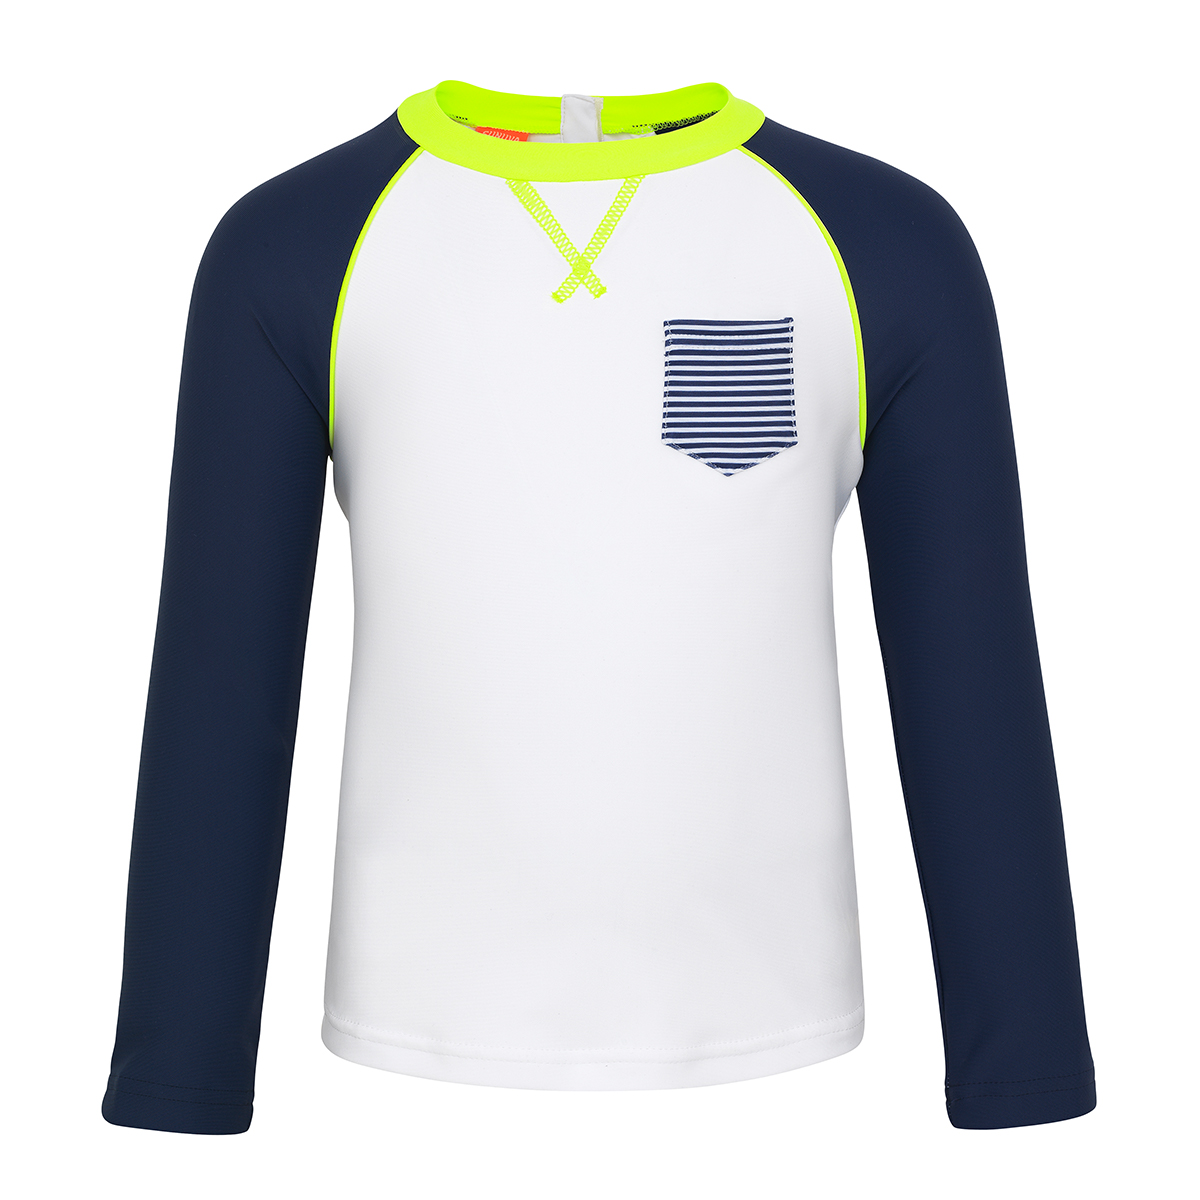 Sunuva Baby White/Navy Long Sleeve Rash Vest